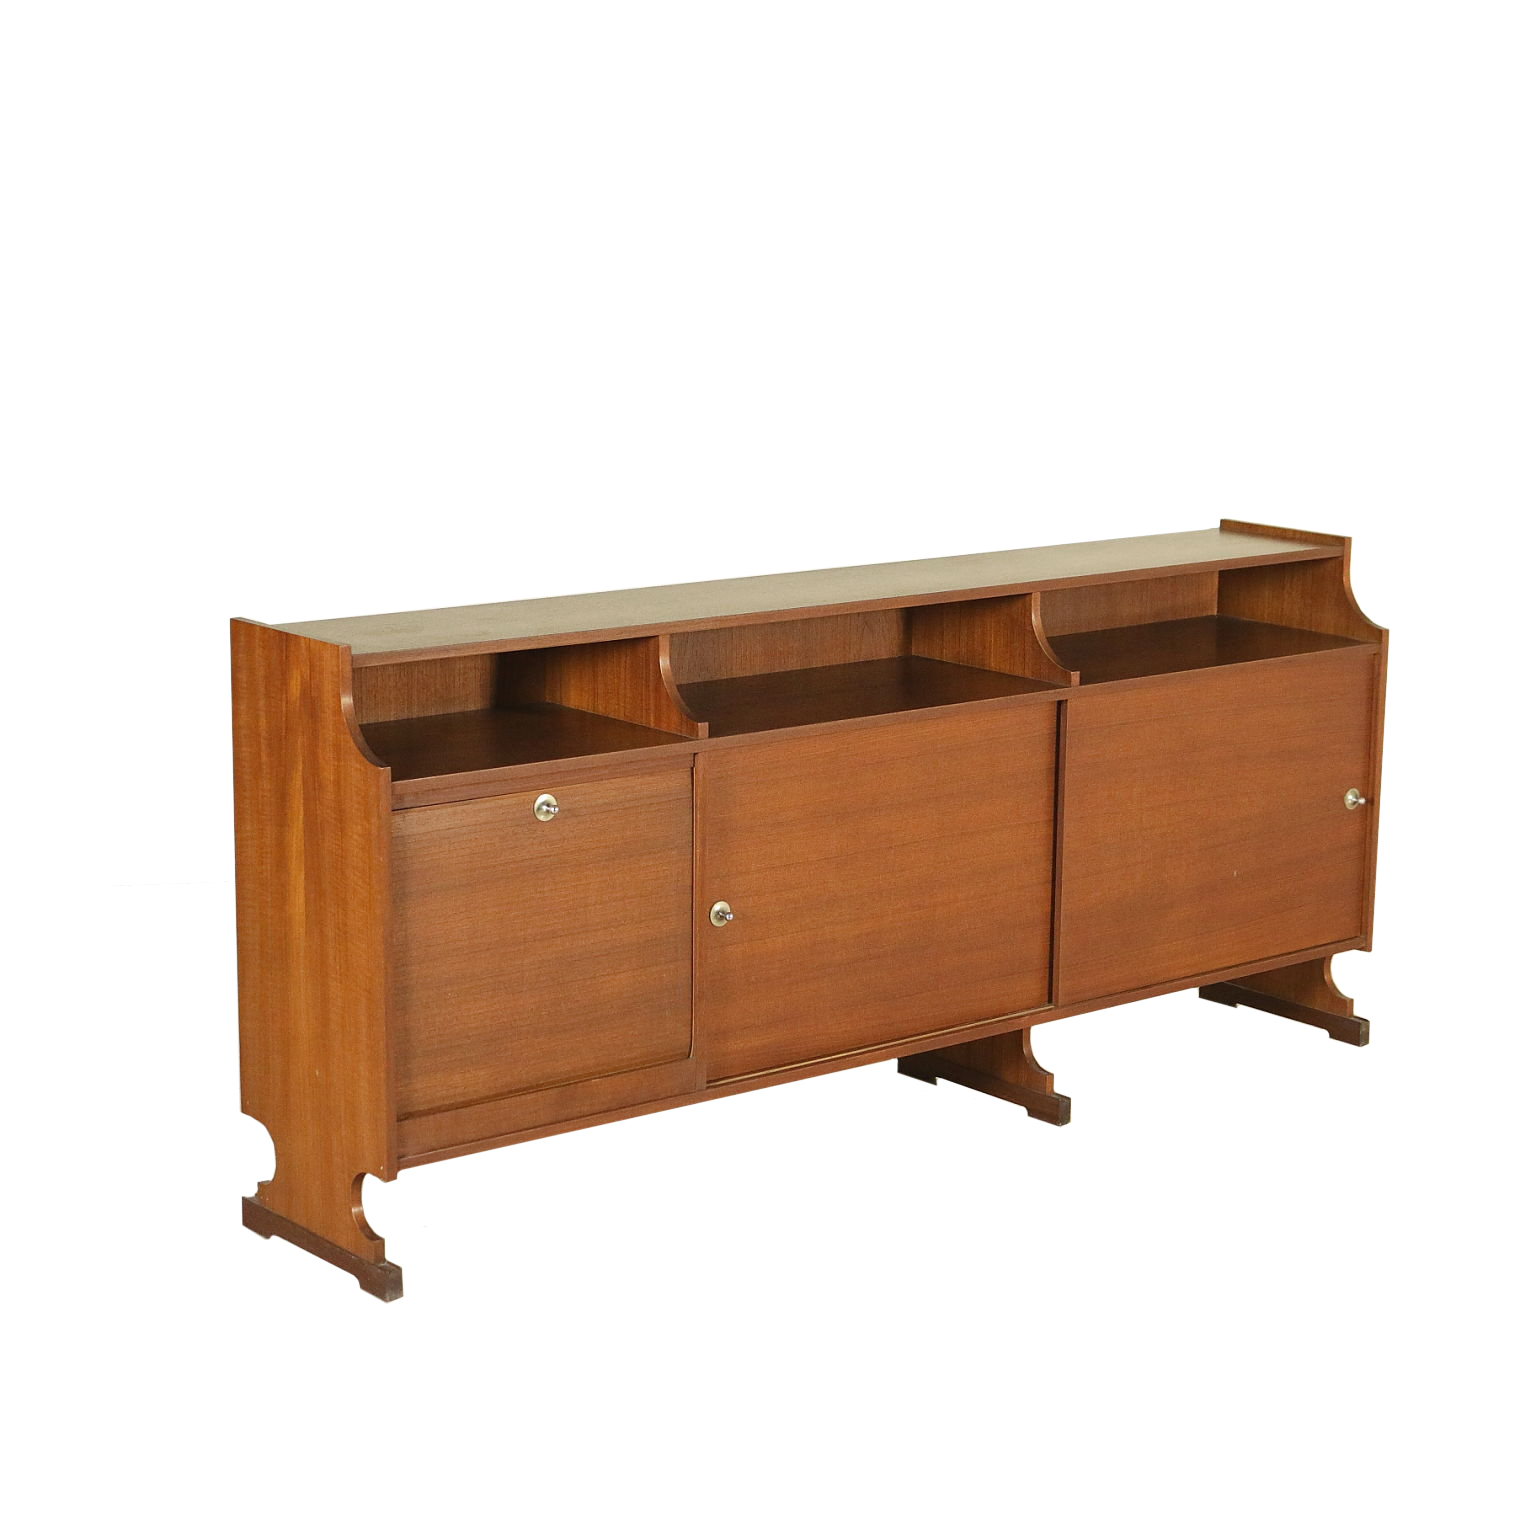 Cabinet of the 60s furniture modern design dimanoinmano it